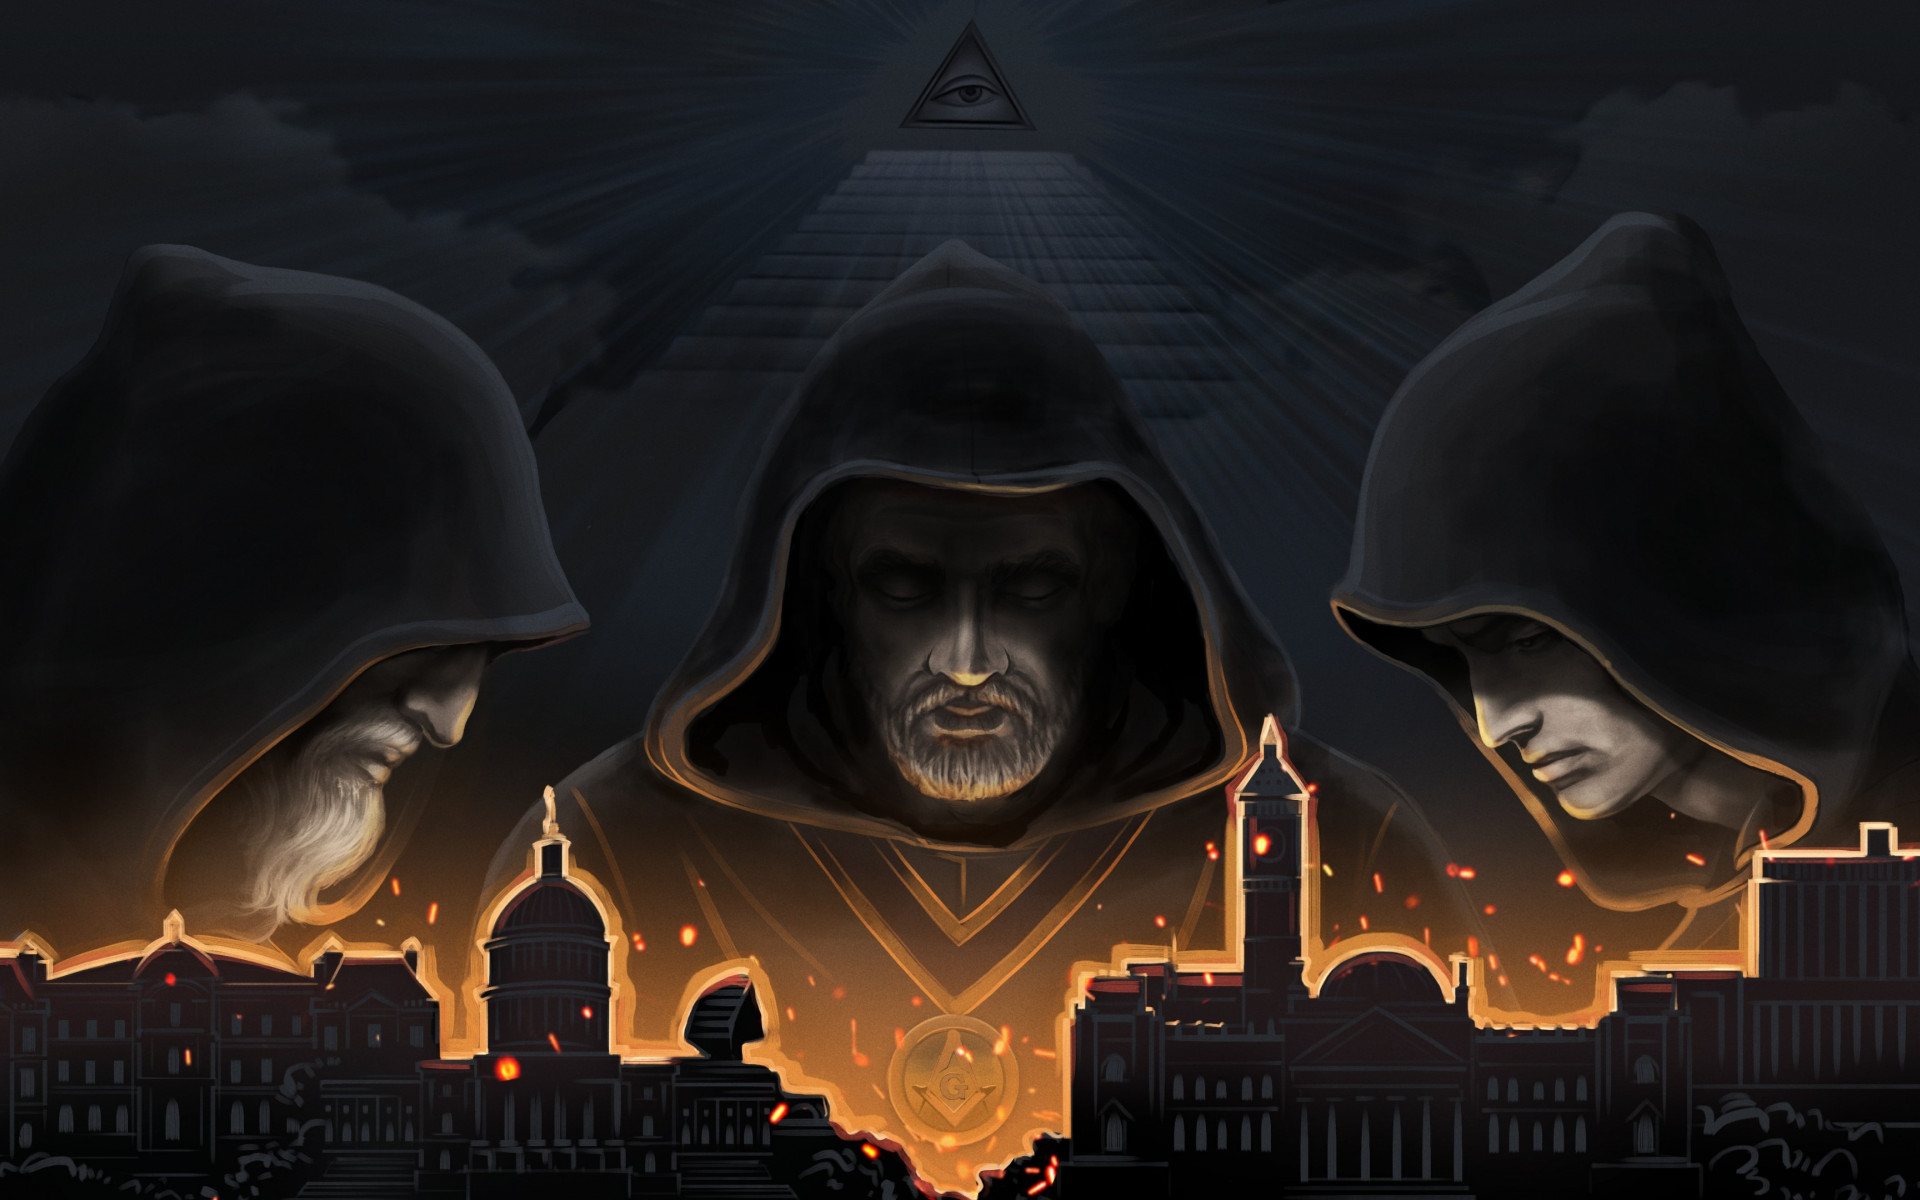 Secret Government wallpaper 1920x1200